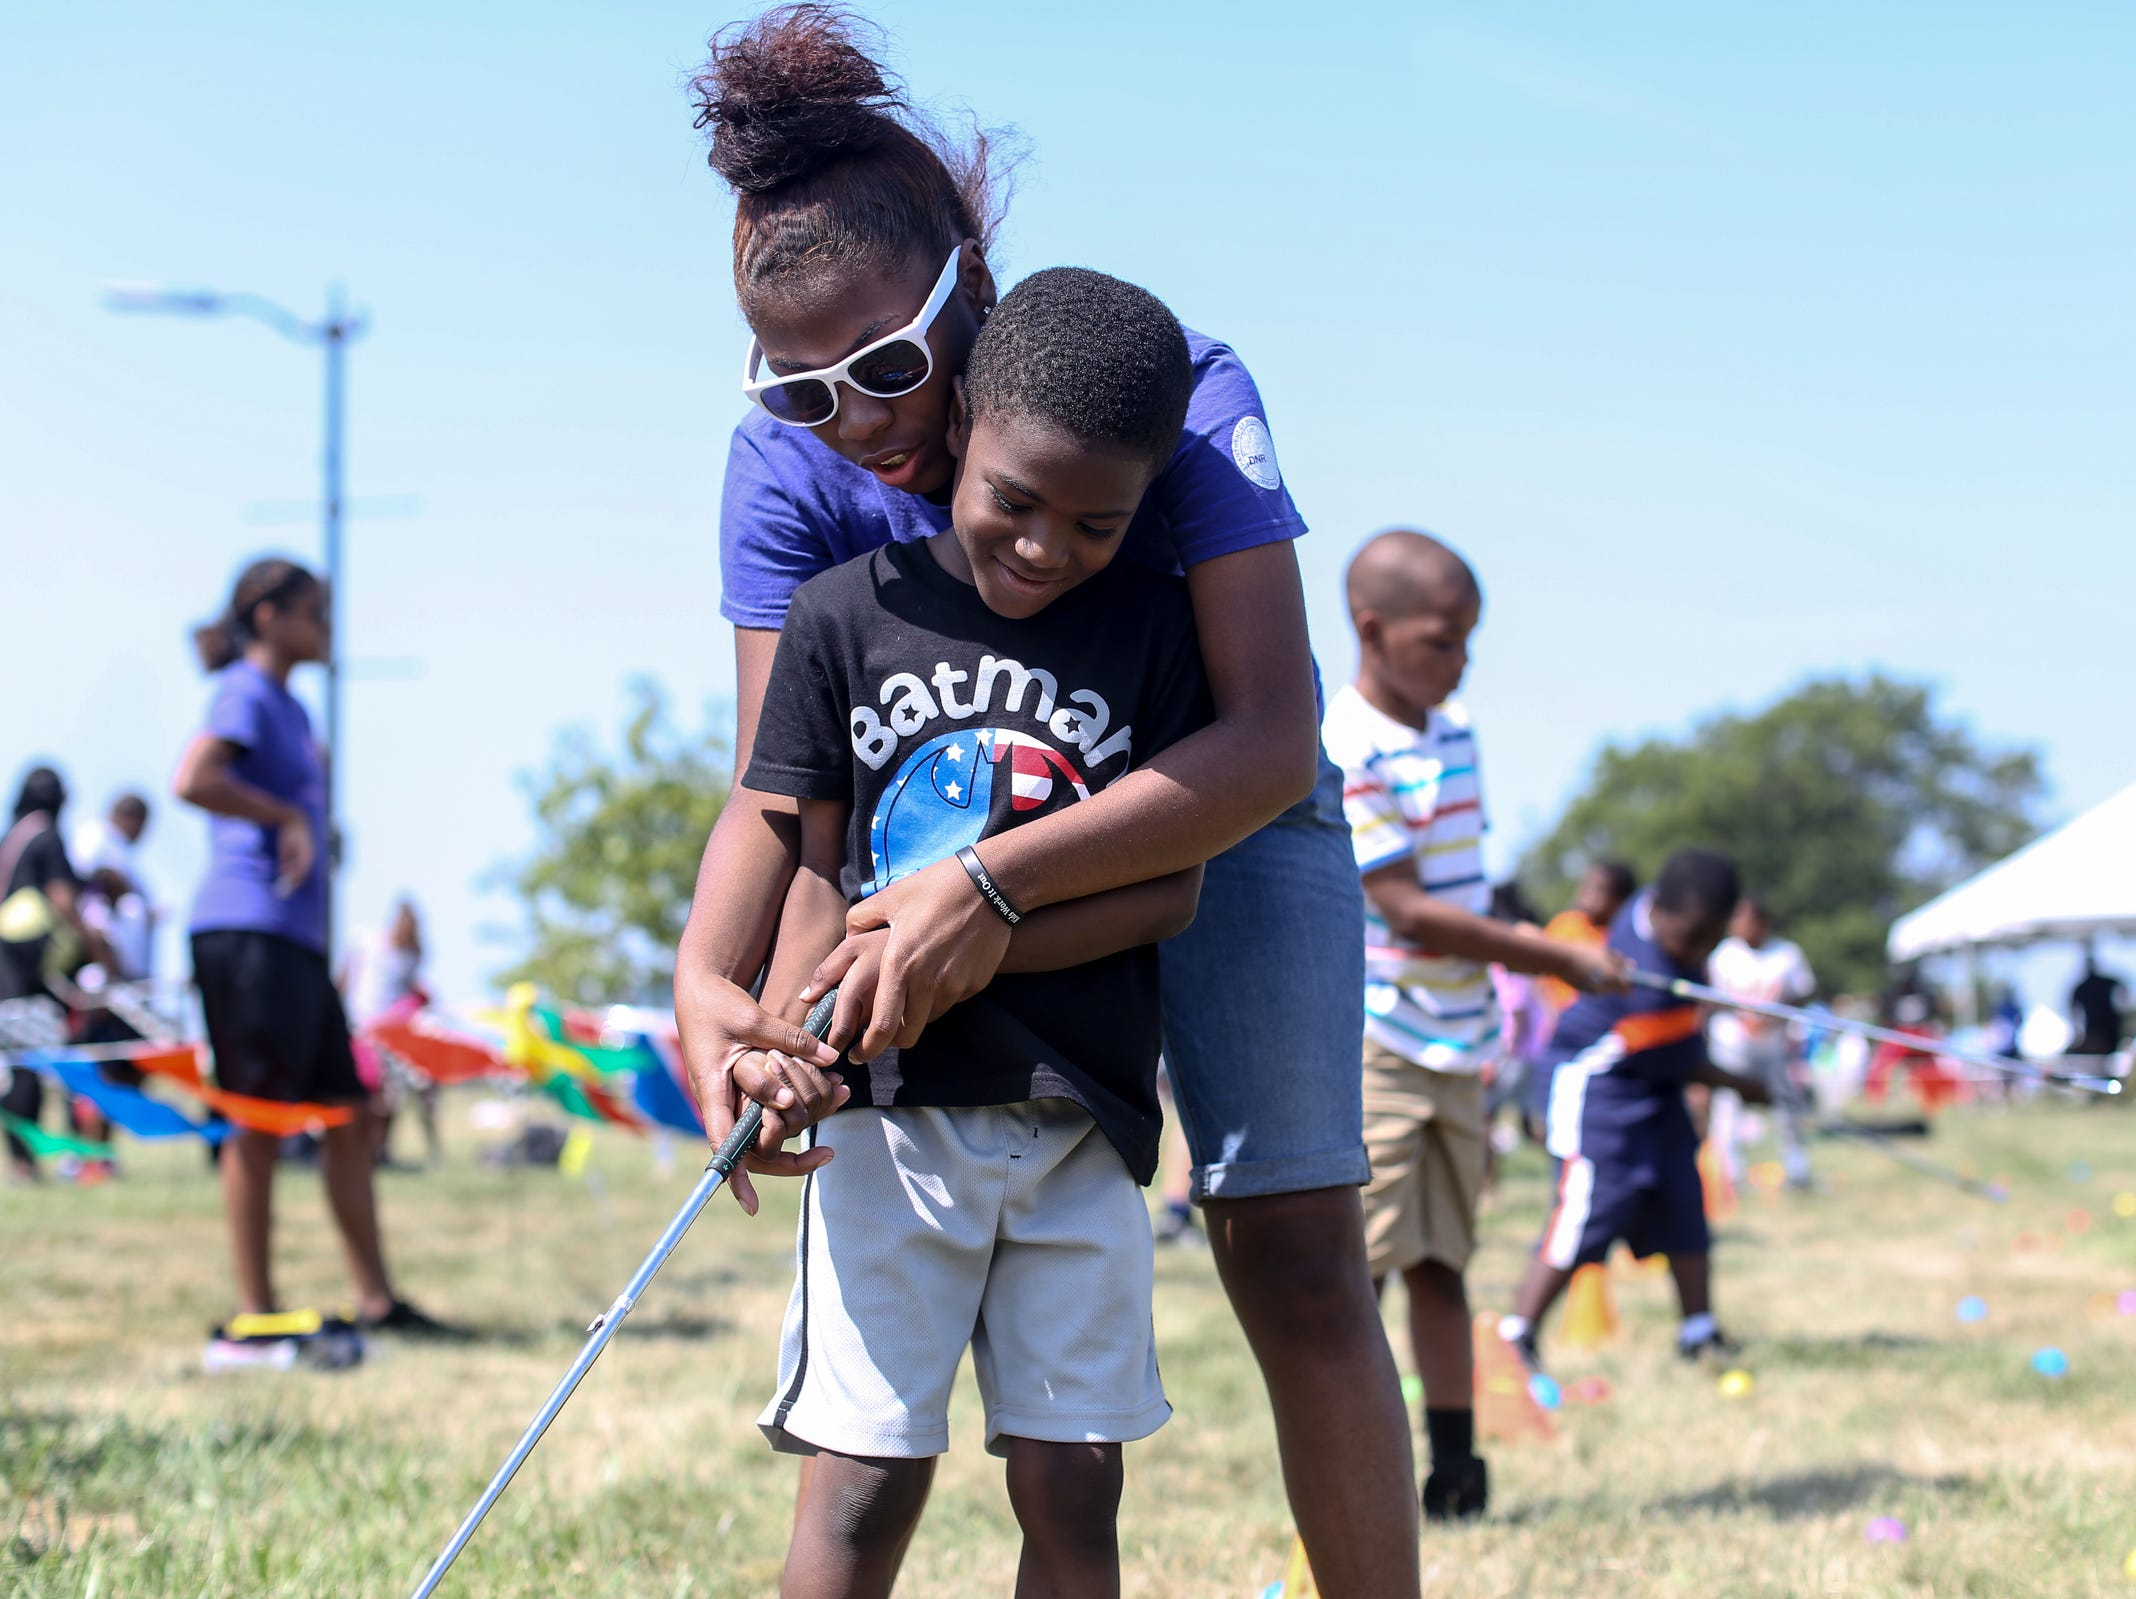 Healthy Kidz, Inc. volunteer Ranneisha Carroll, 17, of Detroit helps Michael Solomon, 6, of Greenfield Union swing a golf club during Metro Detroit Youth Day at Belle Isle in Detroit on Wednesday, July 11, 2018.